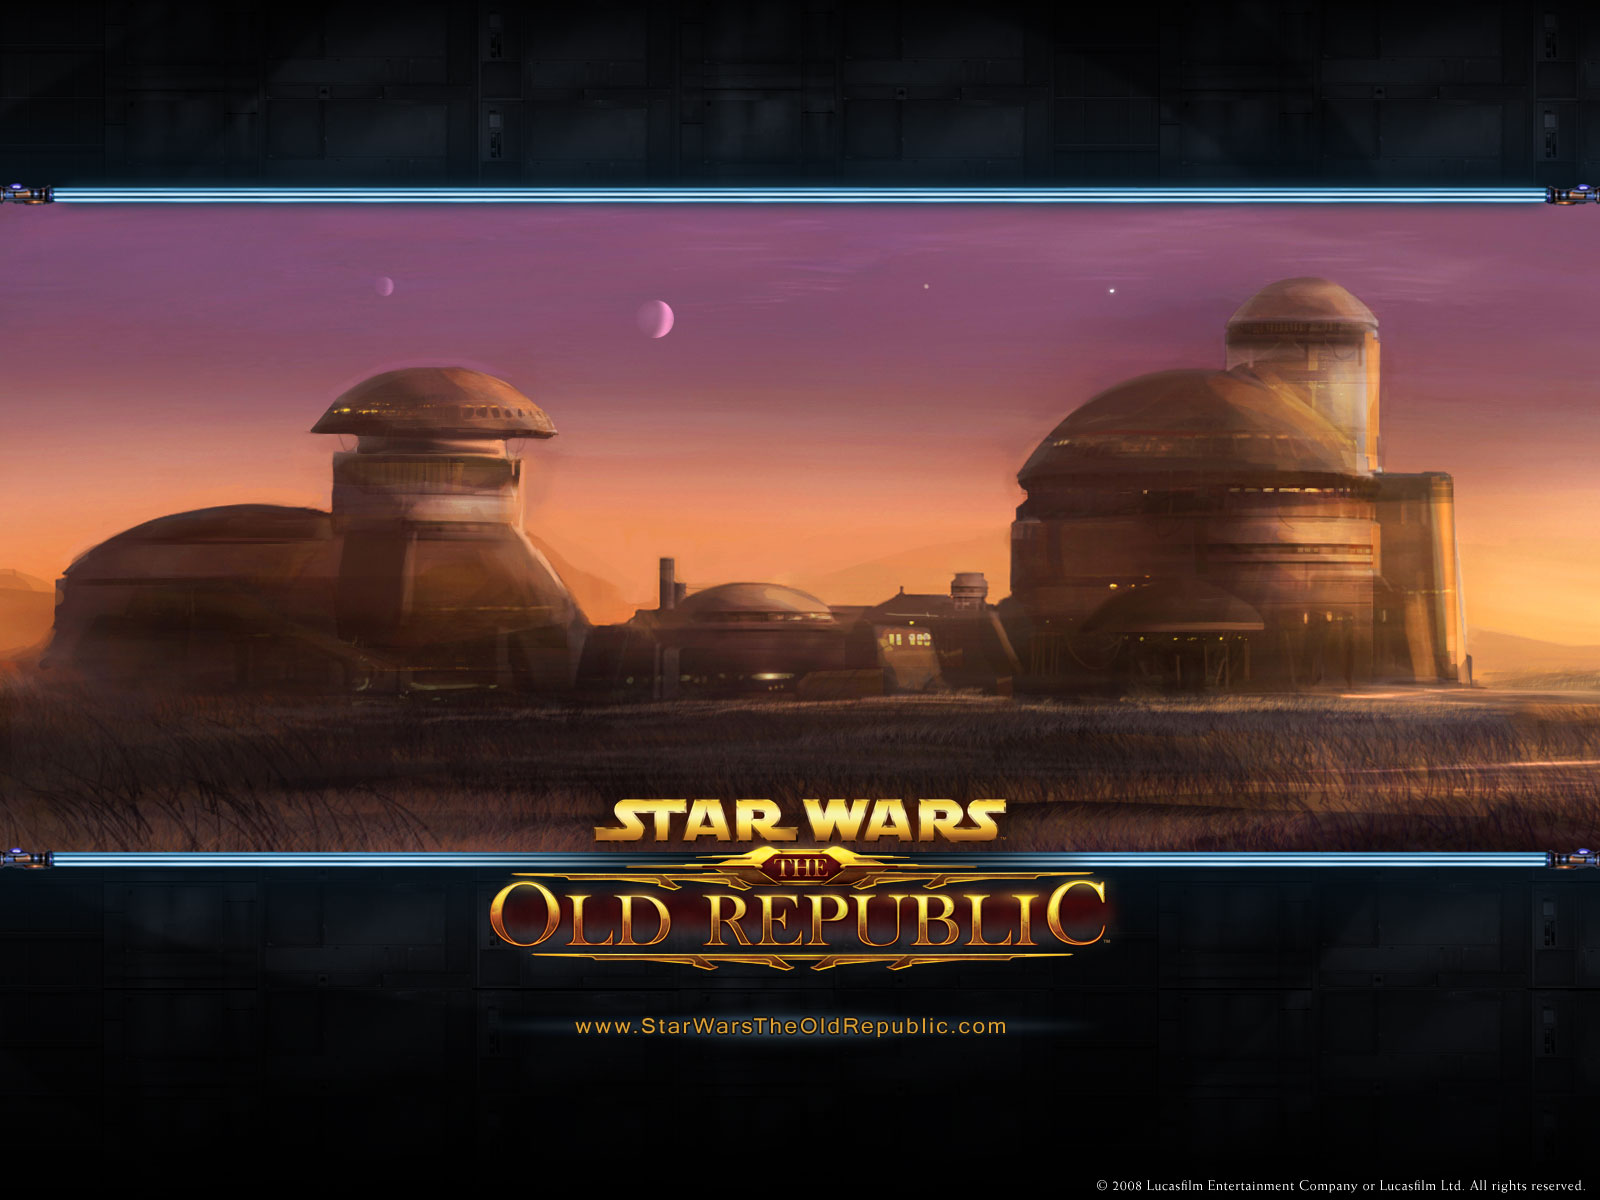 Star Wars The Old Republic Wallpaper Collection II HD 1600x1200